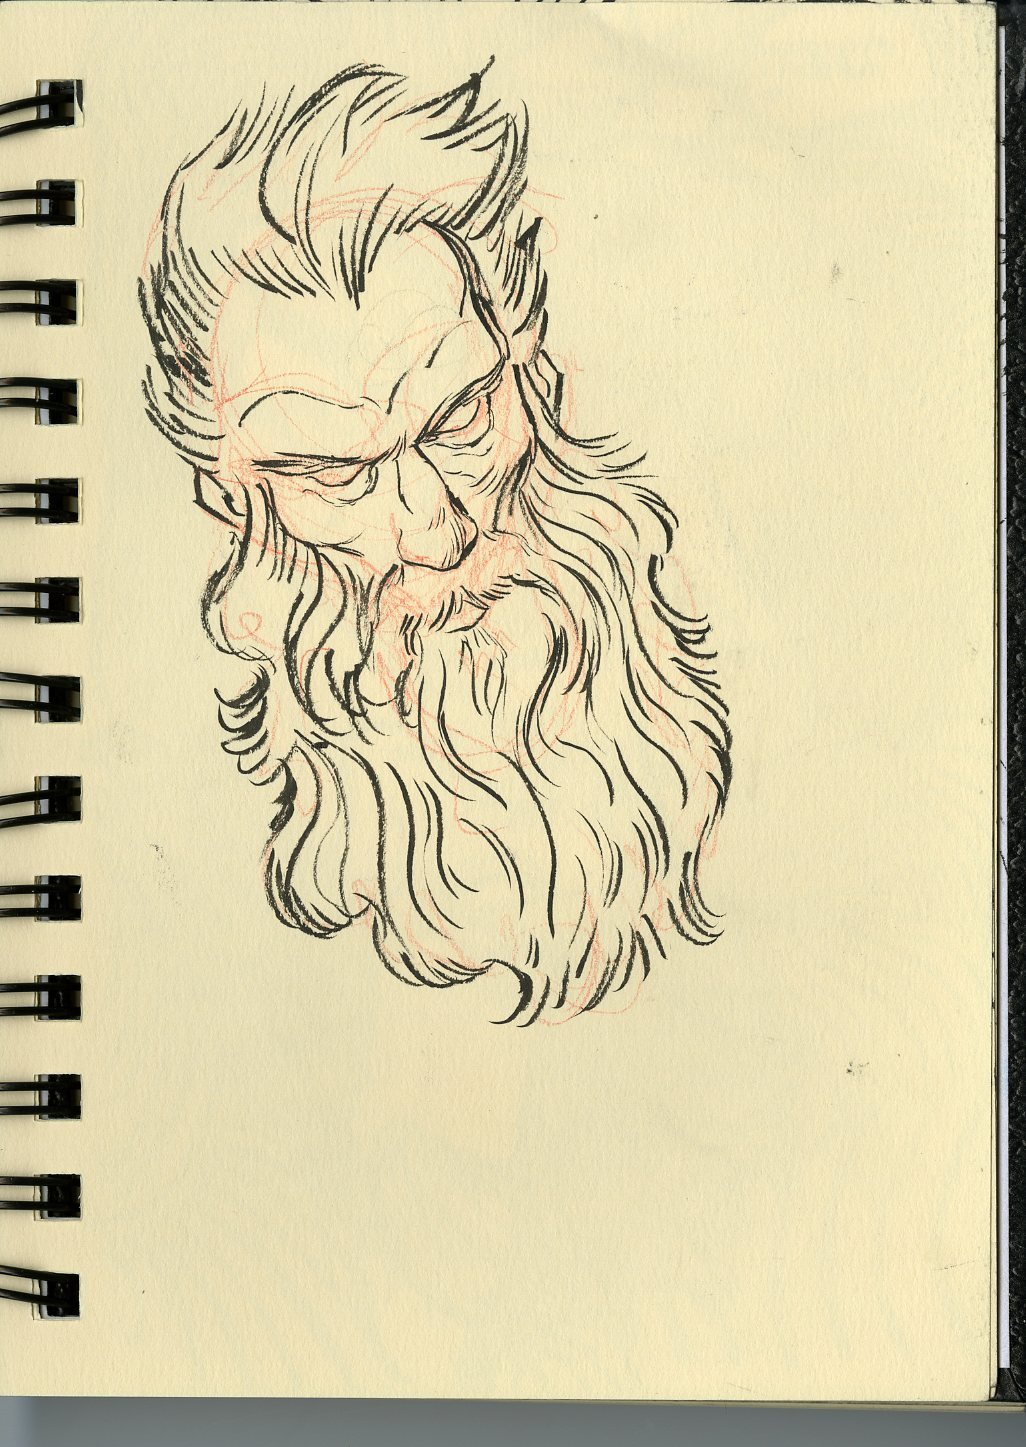 Anthony rivero creamsketchbookbeardedman